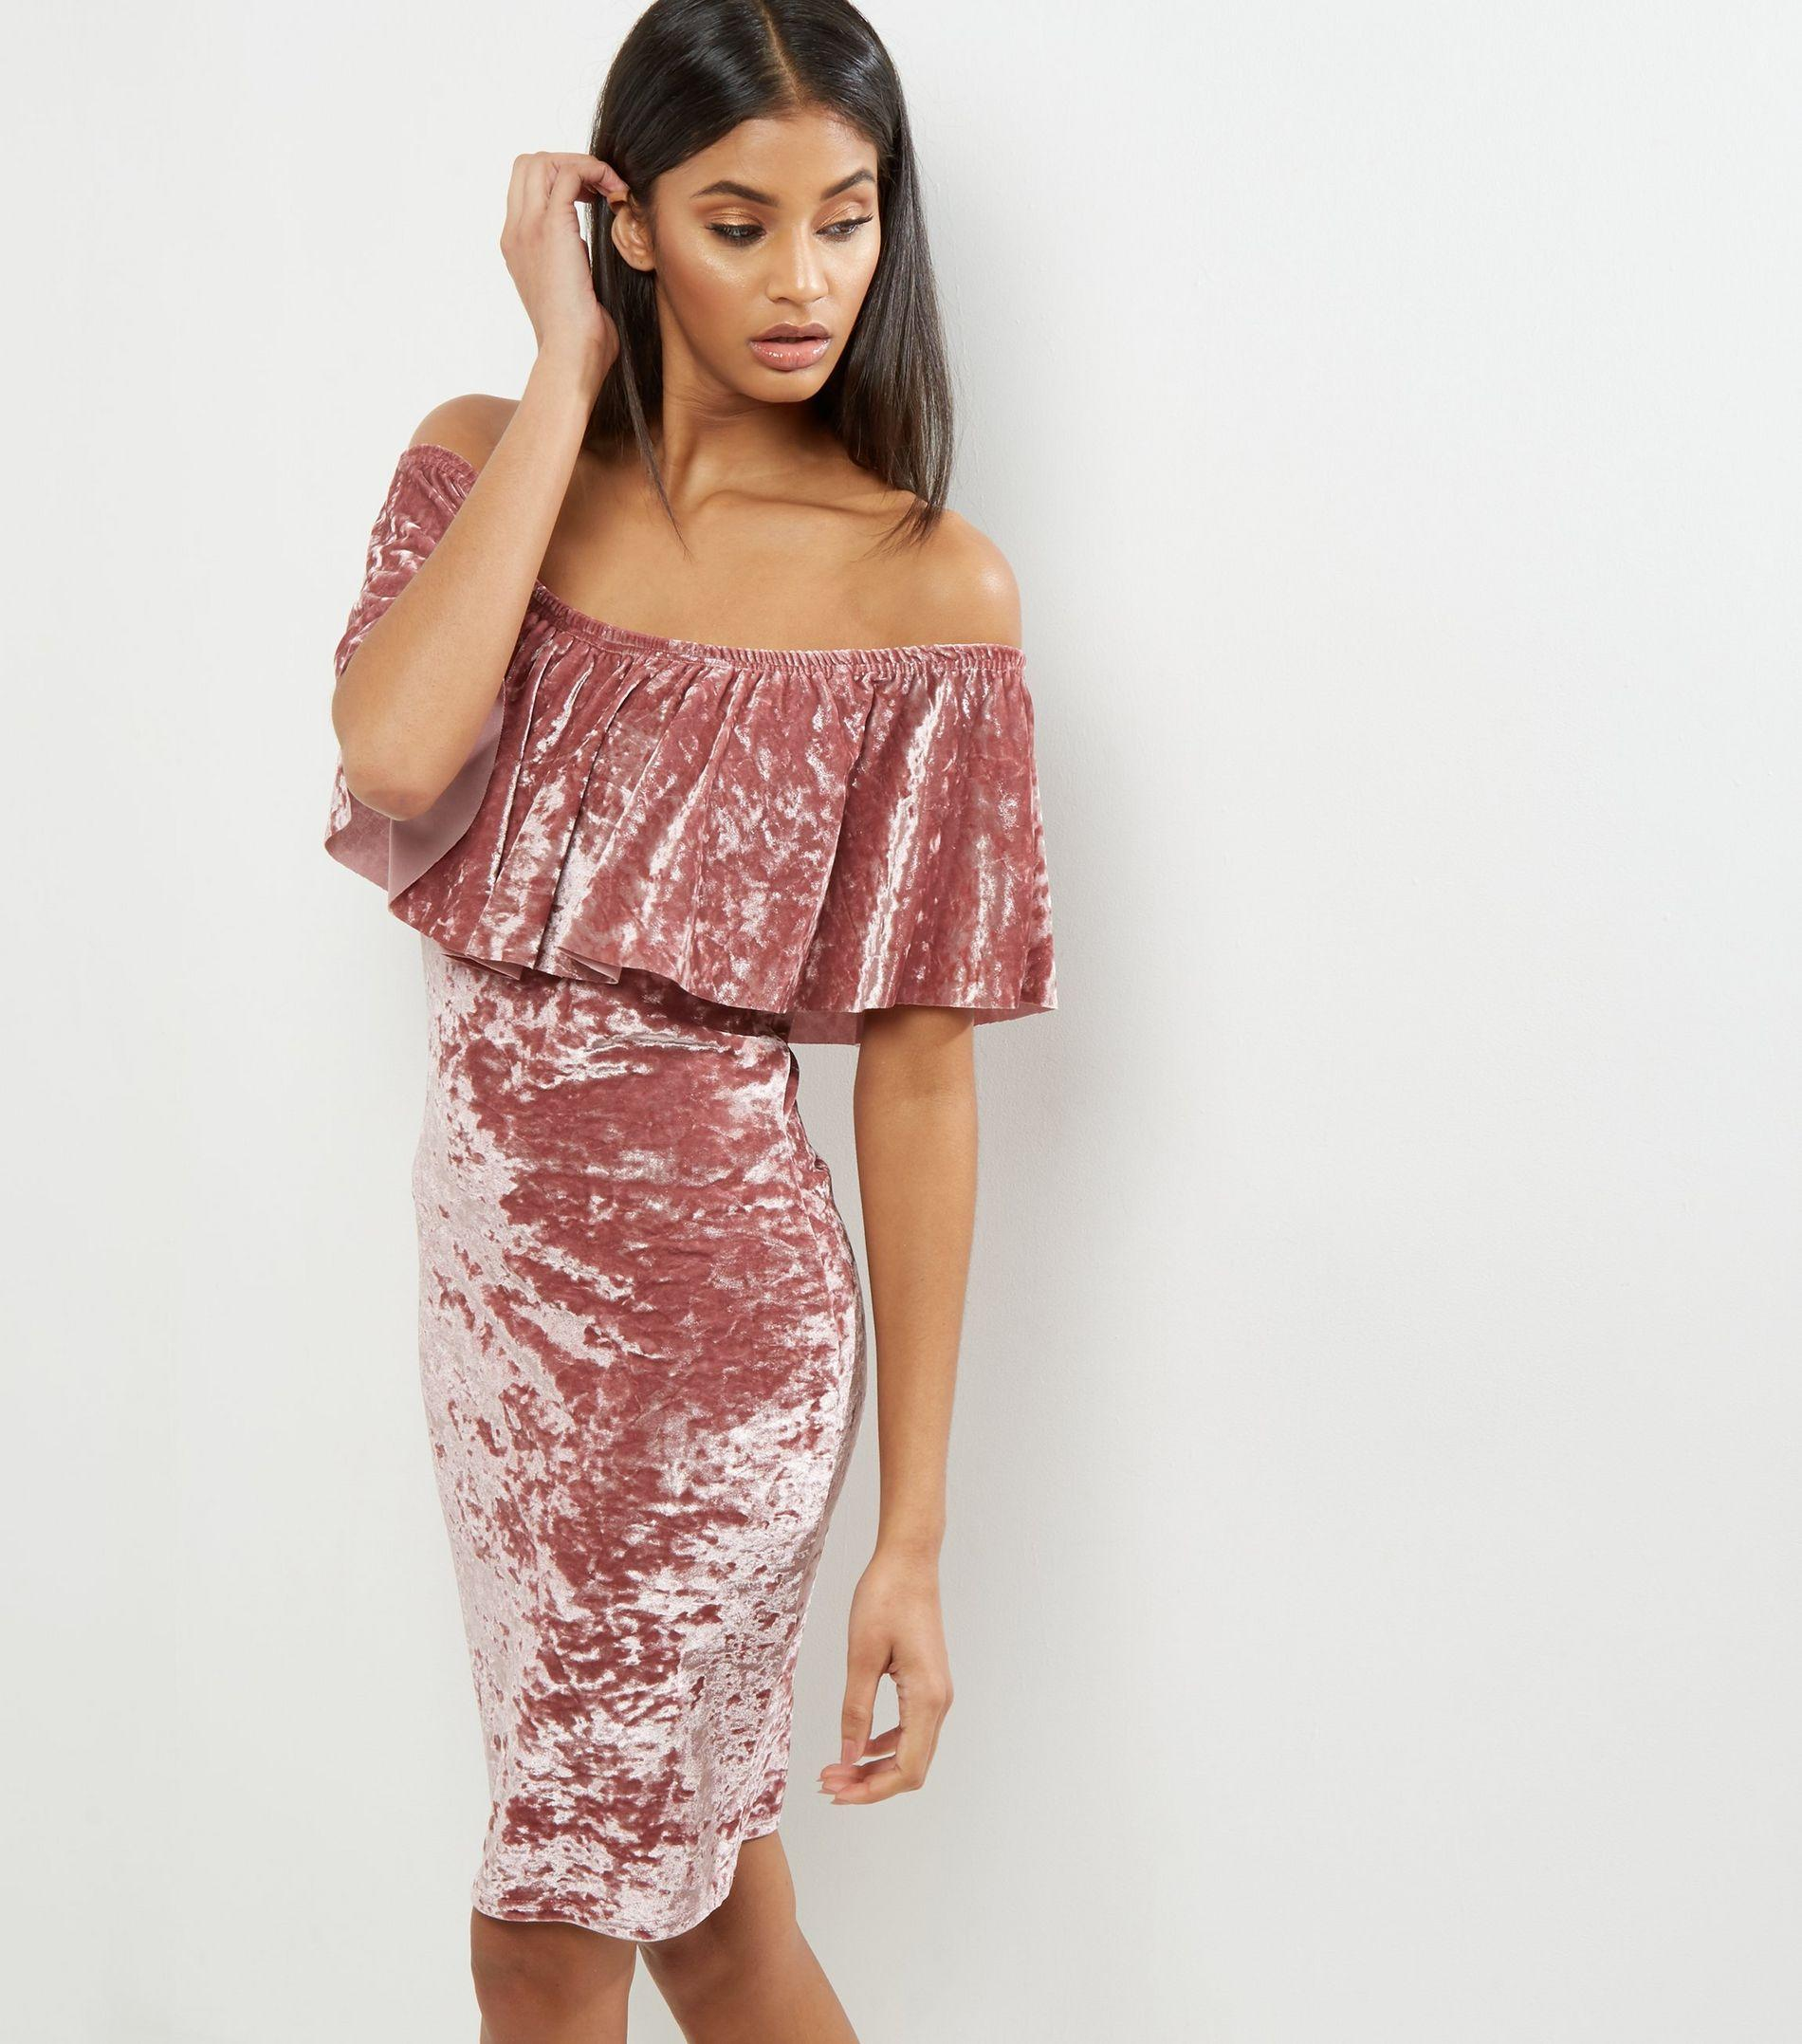 Denim Dresses Apricot Dresses Jersey Dresses Sweet Dresses Sports Dresses Statement Dresses Batwing Dresses Geometric Dresses Multicolor Dresses Stay in the Know! Be the first to know about new arrivals, look books, sales & promos!